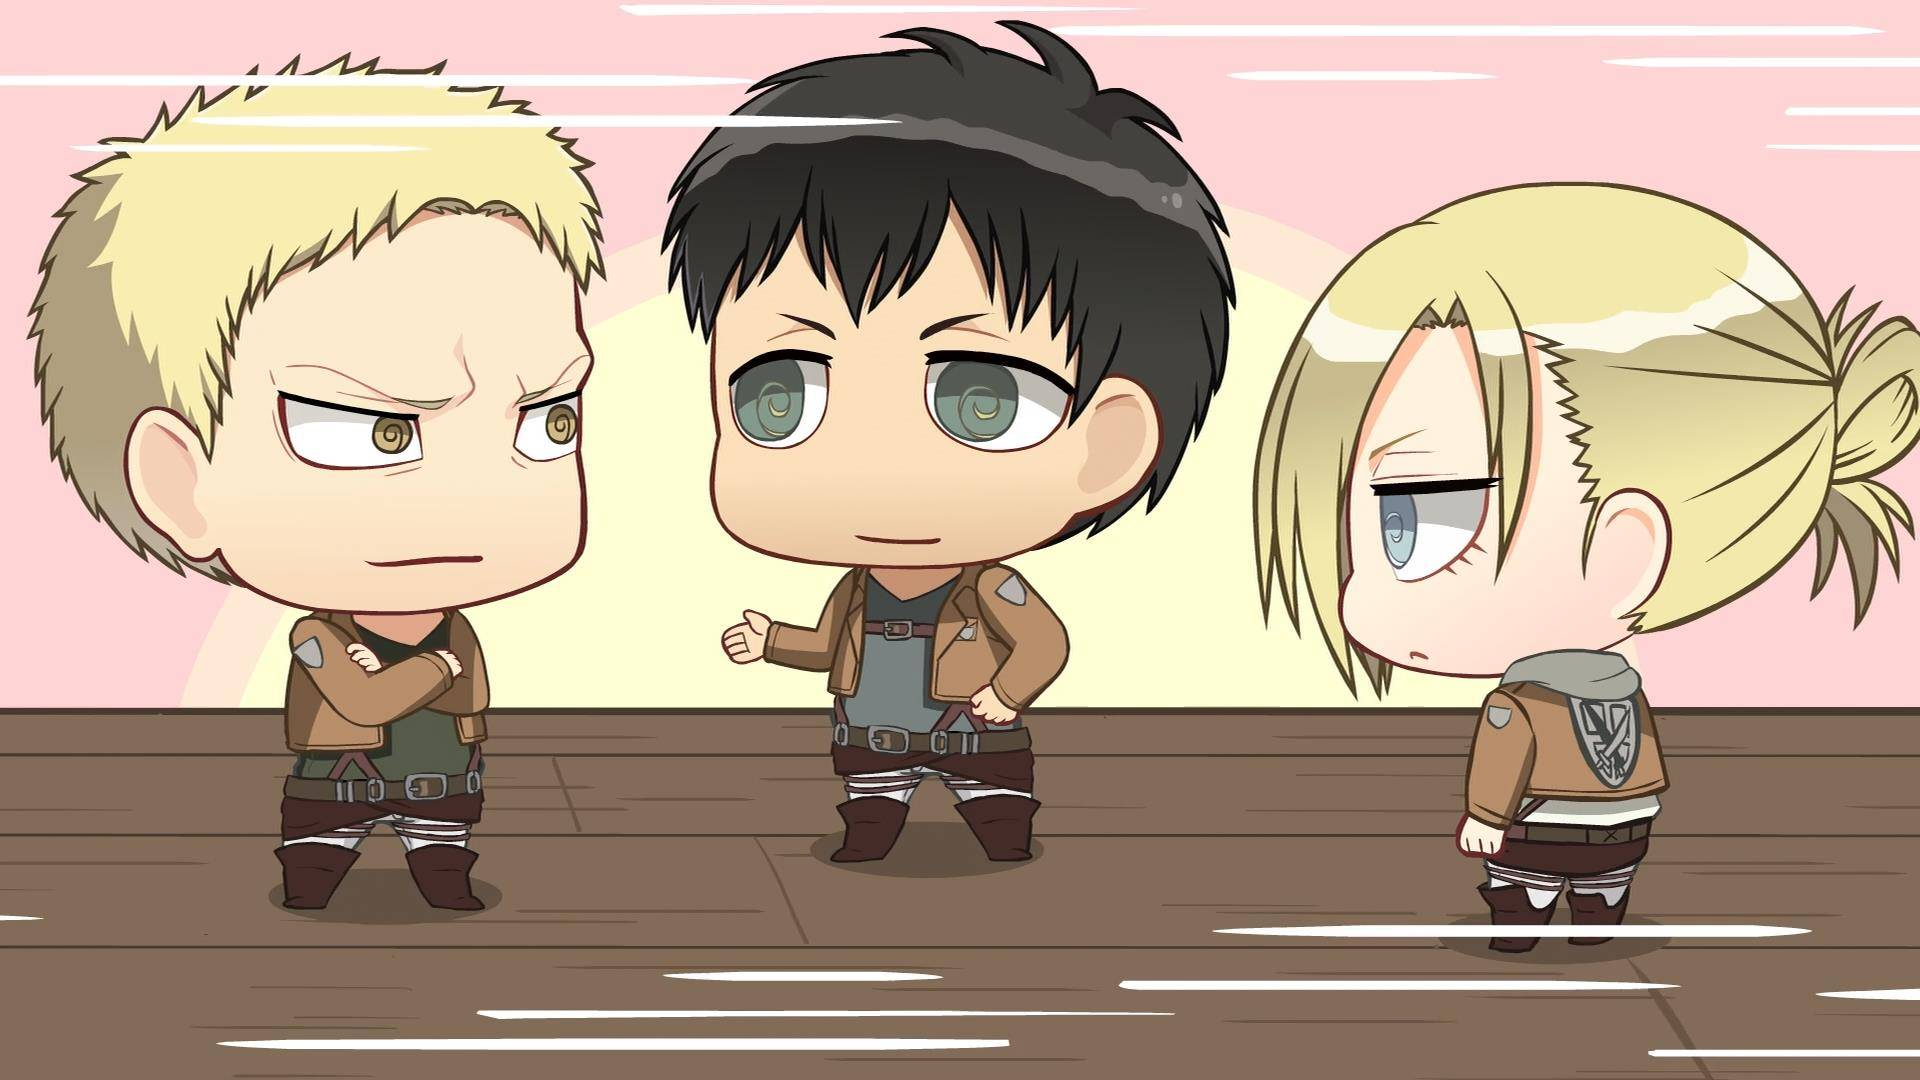 eren annie and reiner   Attack on Titan Wallpaper 1920x1080